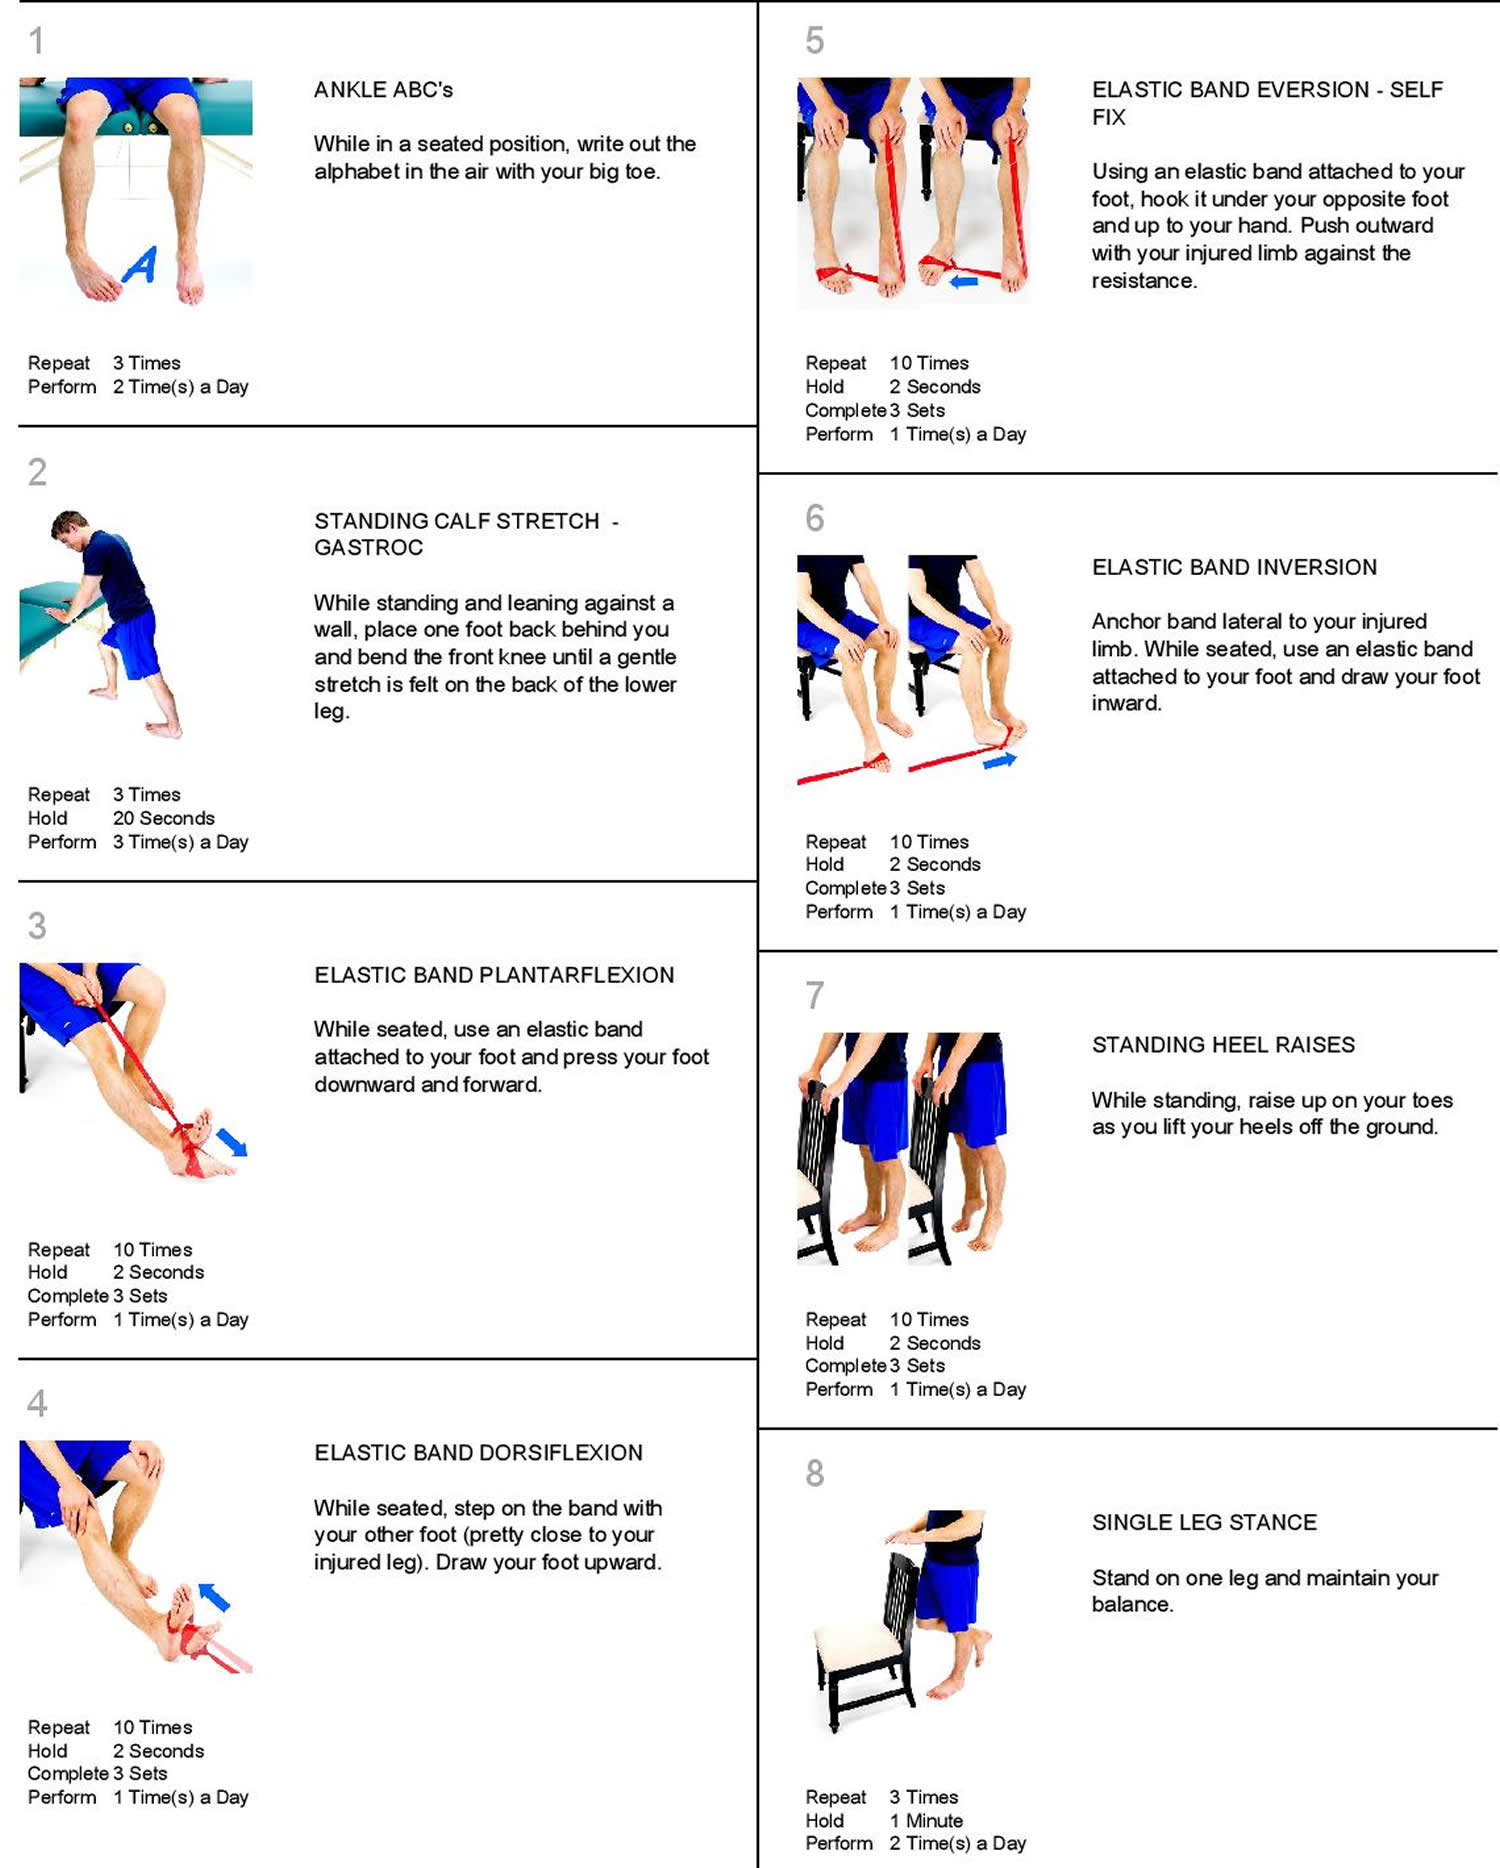 Sprained ankle exercises